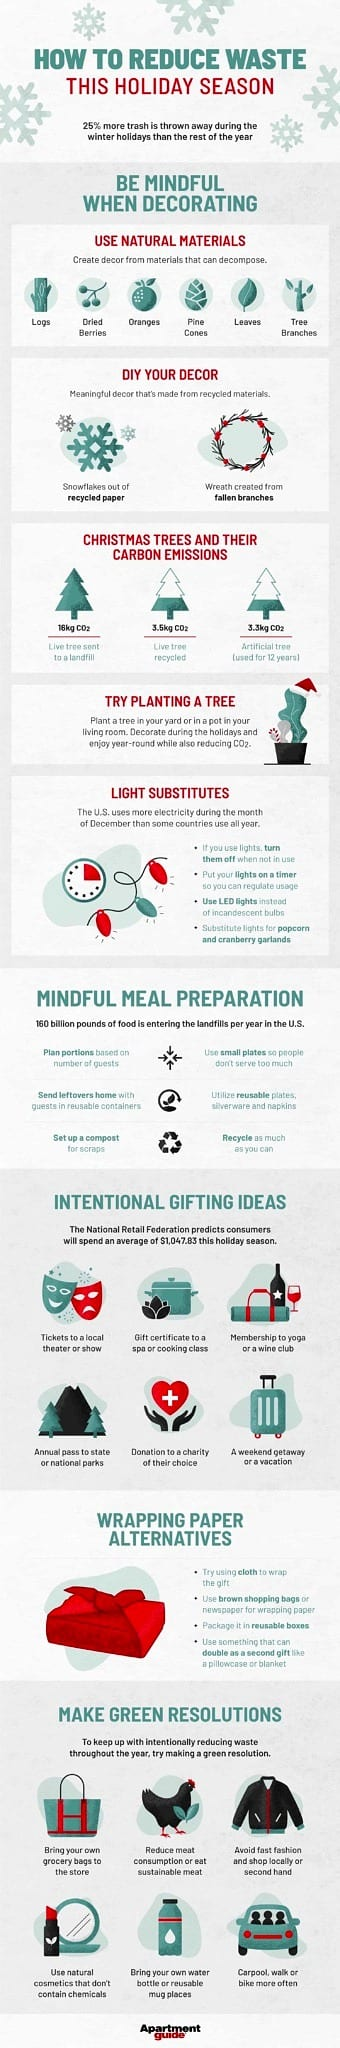 infographic that show how to reduce waste for the holiday season